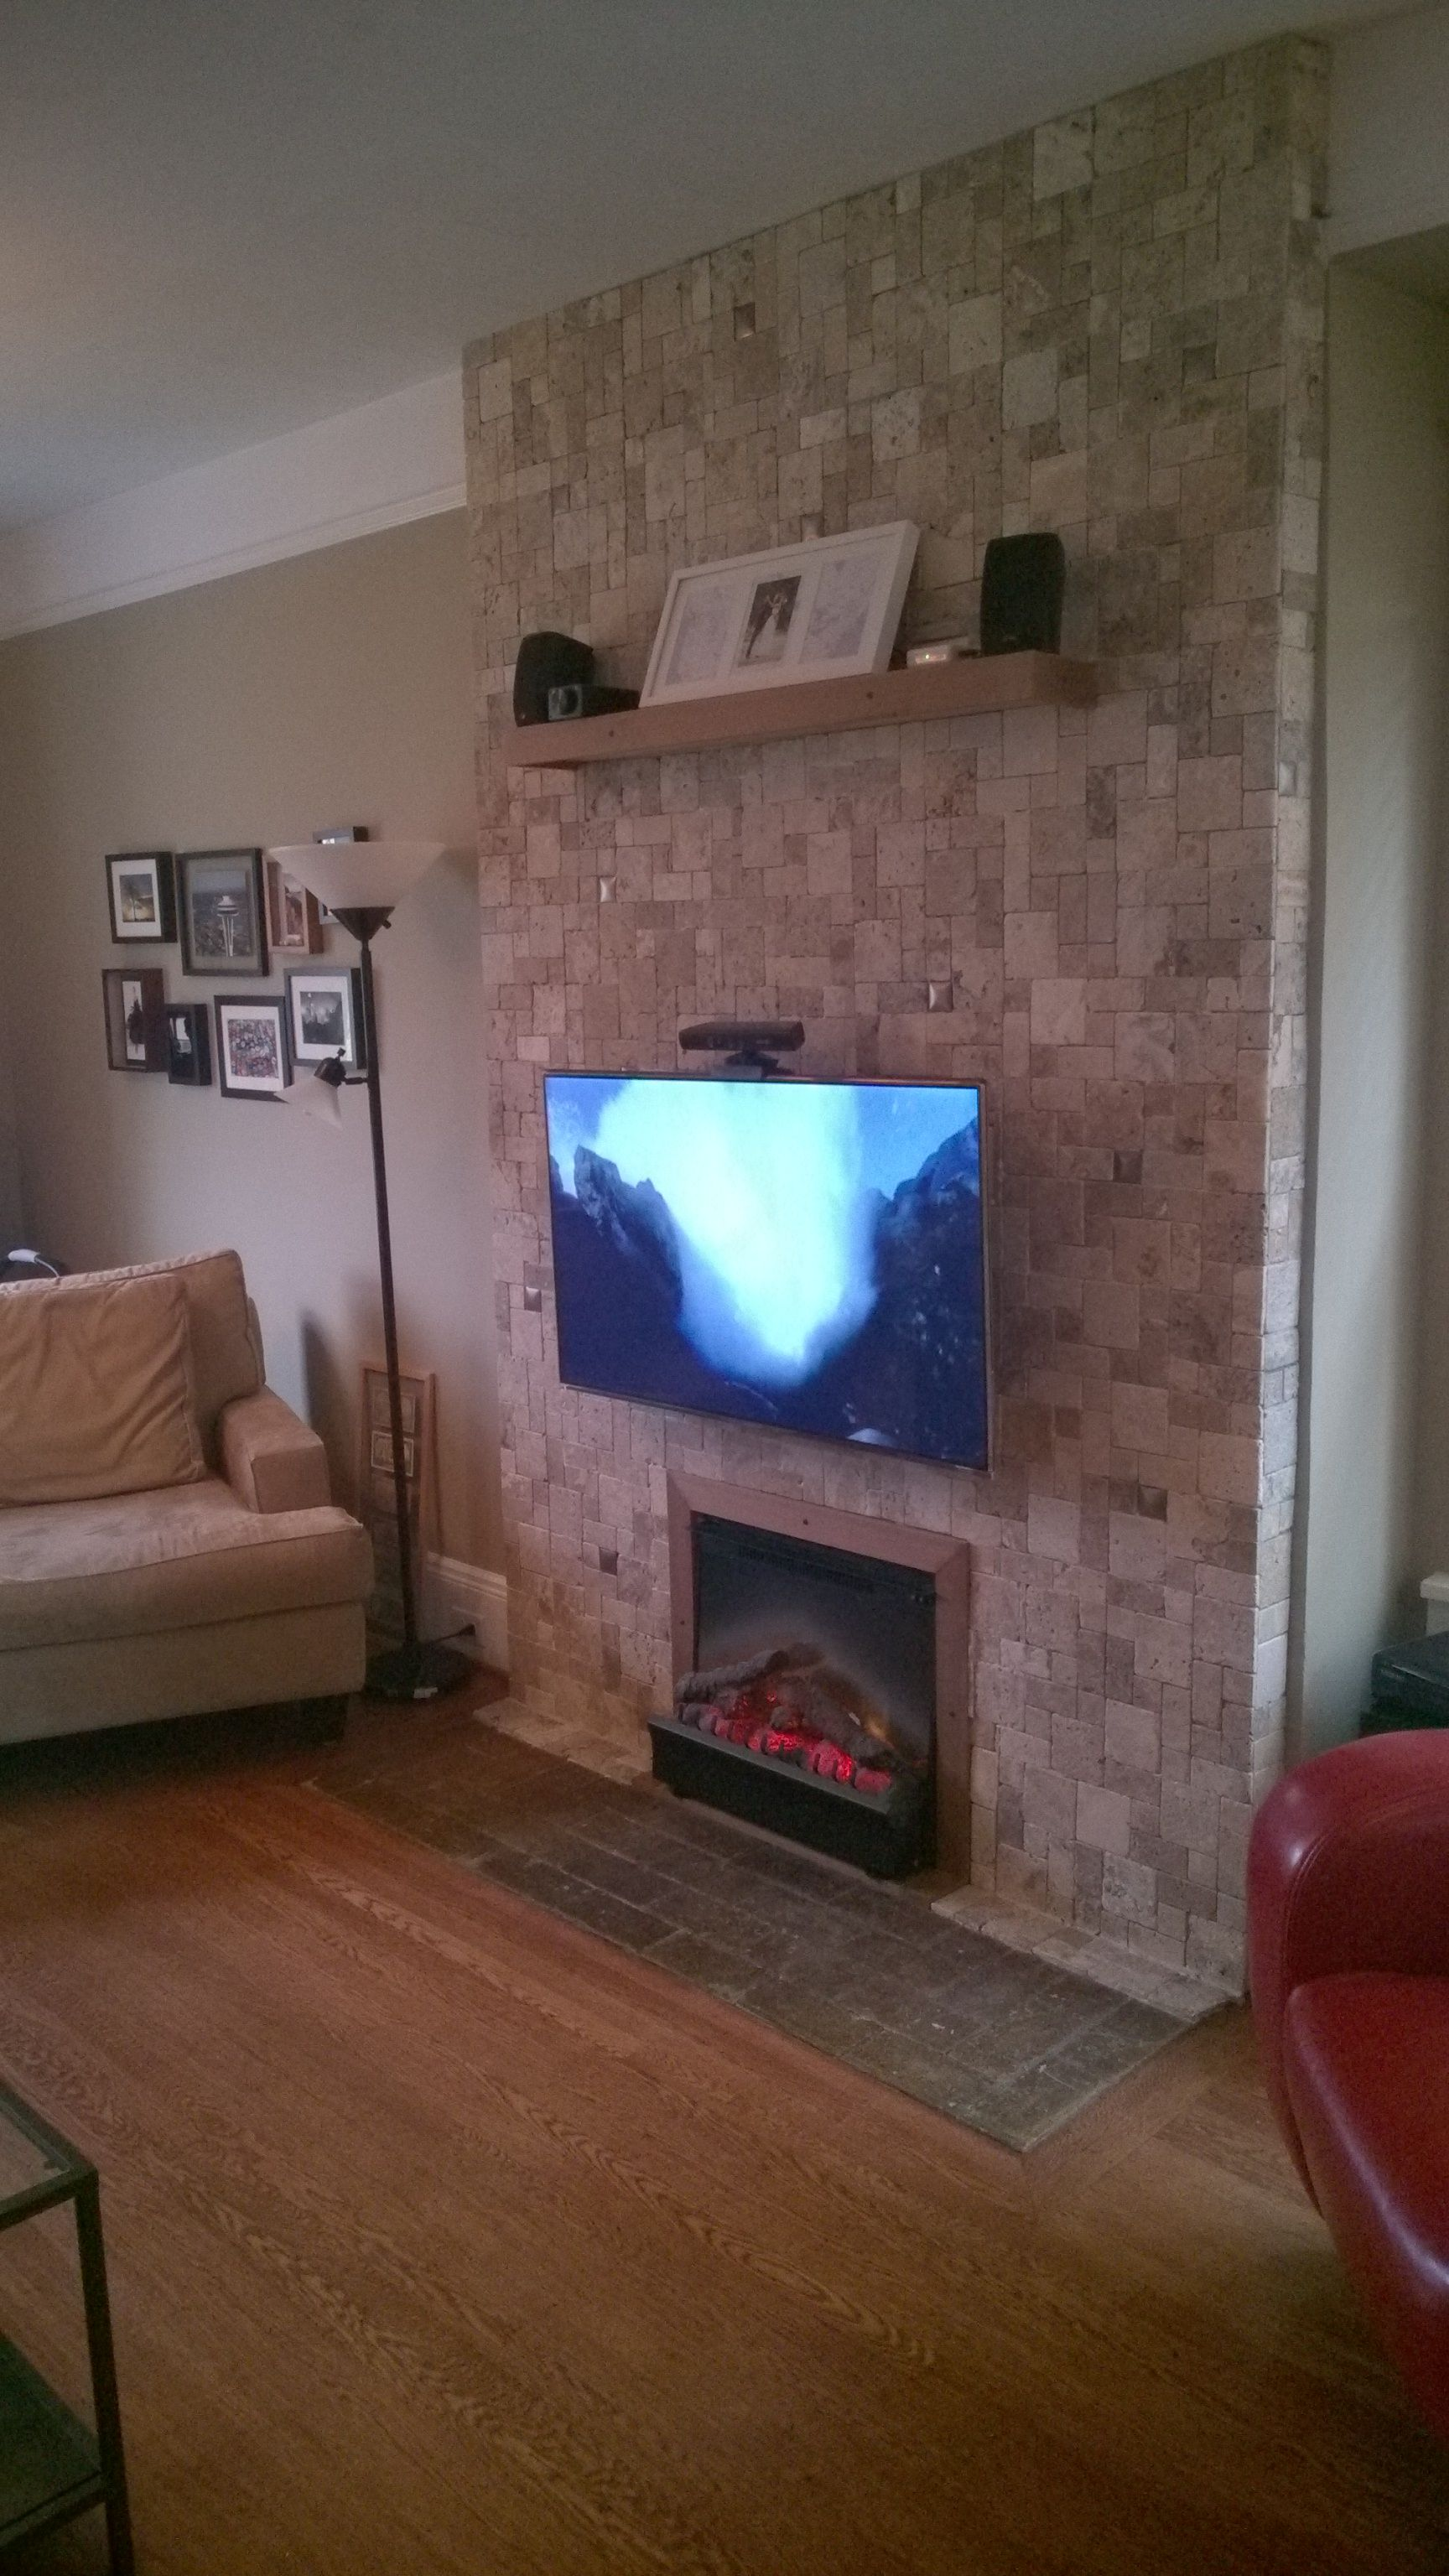 samsung tv lowes. samsung tv with an kinect mounted omnimout above electric fireplace. reclaimed wood for the shelf and fireplace frame. stone tiles from lowe\u0027s. tv lowes